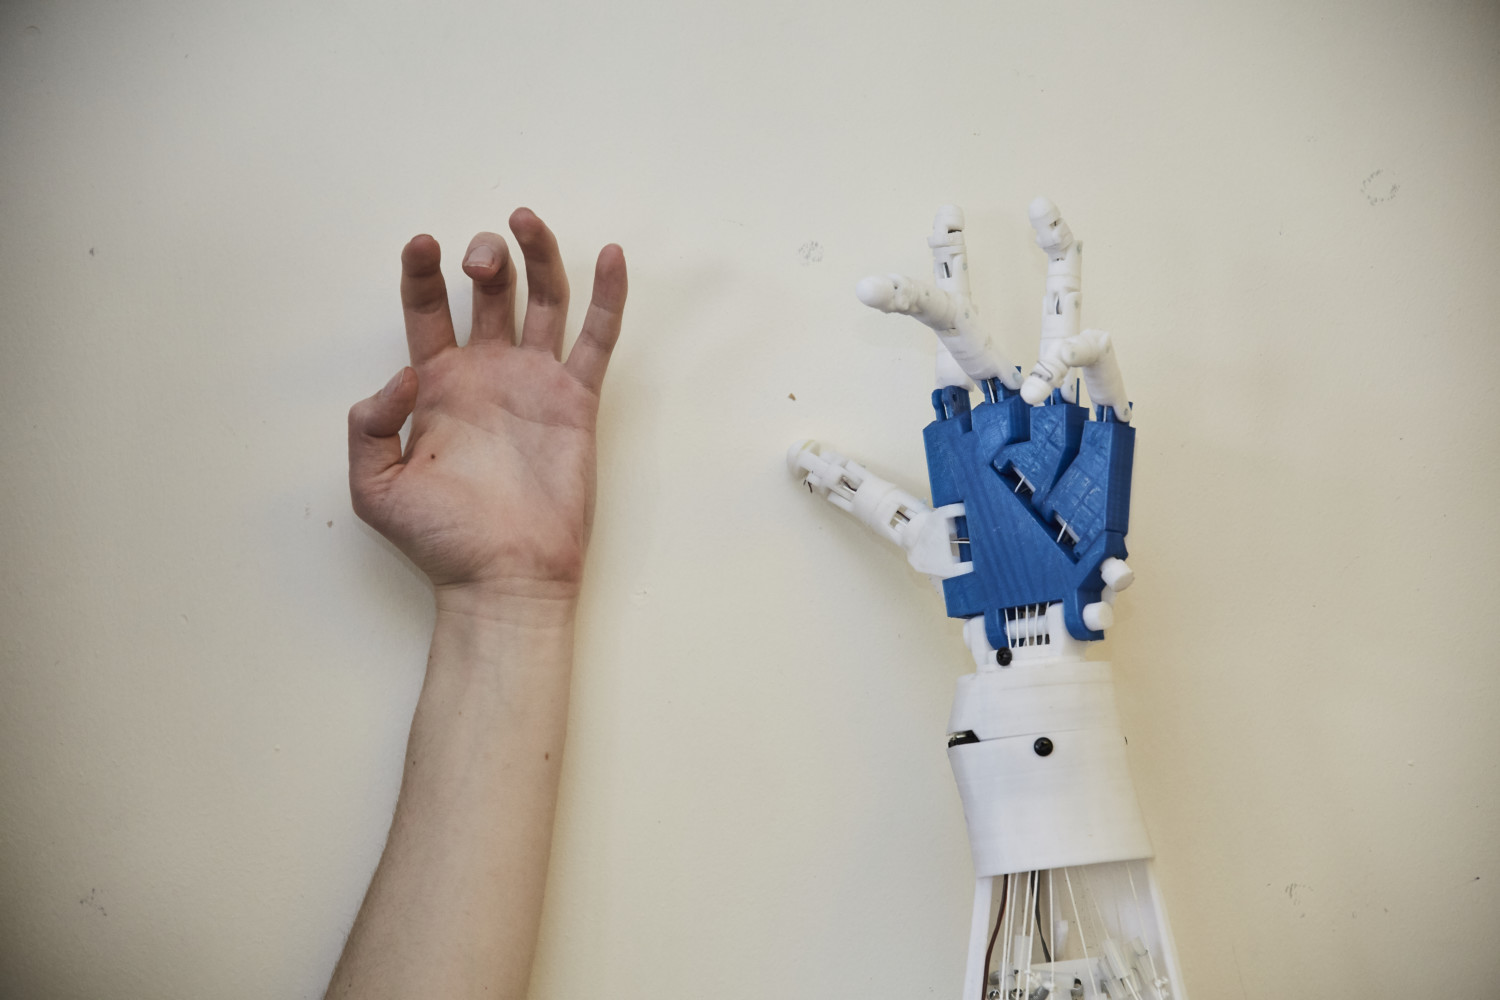 hand against a robotic arm